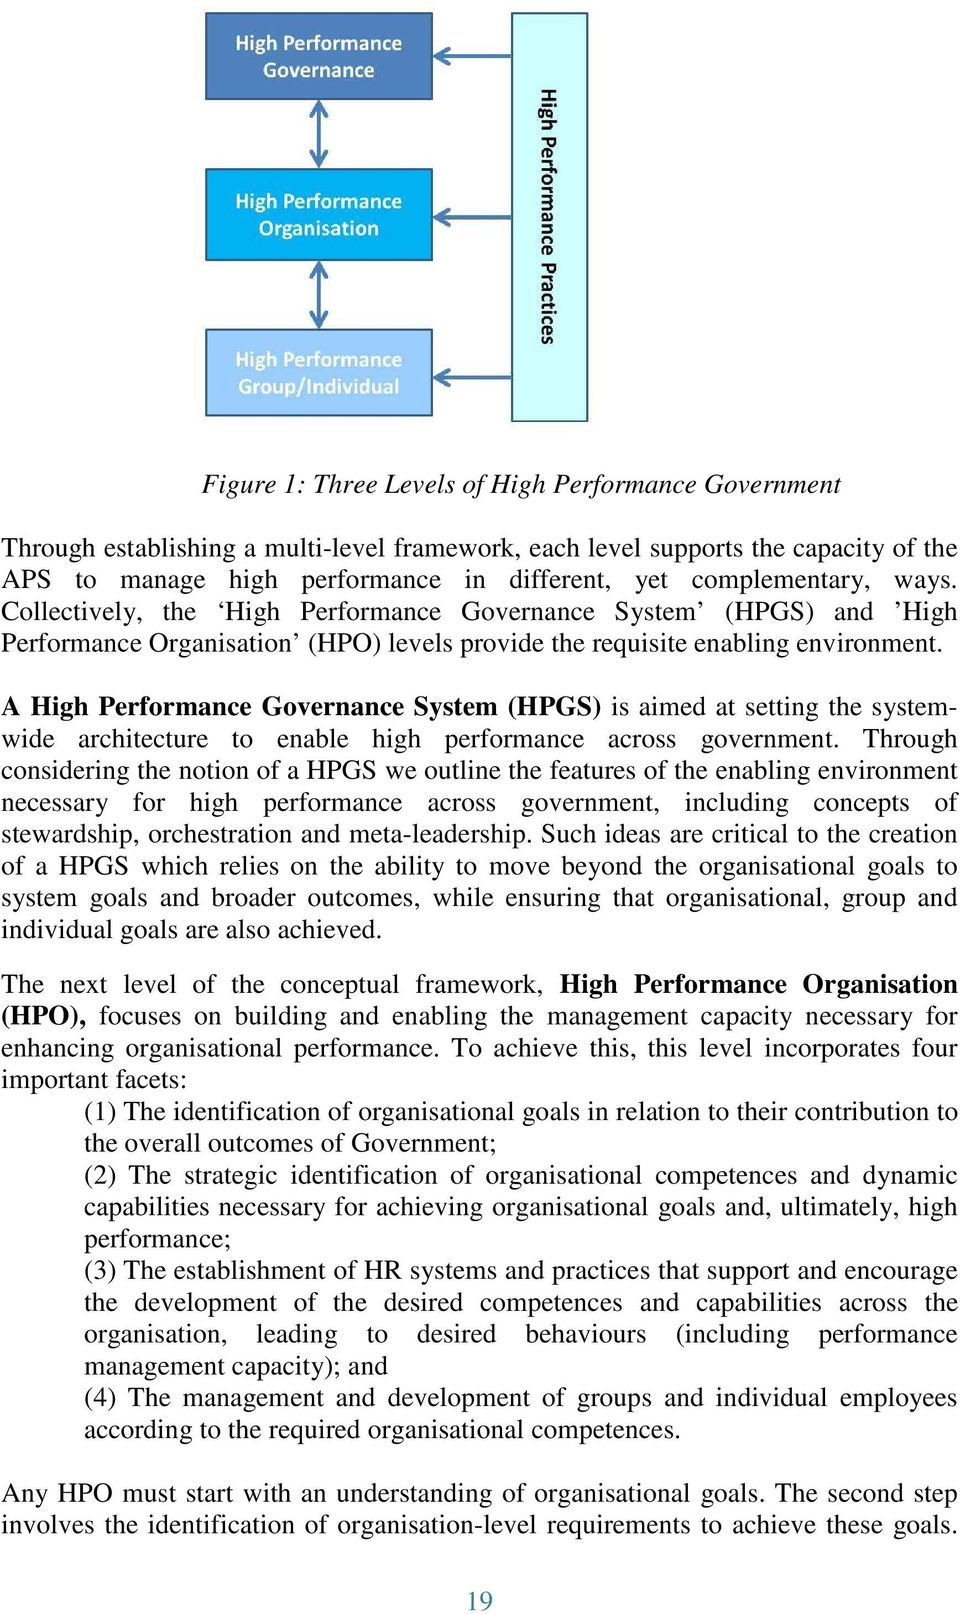 A High Performance Governance System (HPGS) is aimed at setting the systemwide architecture to enable high performance across government.